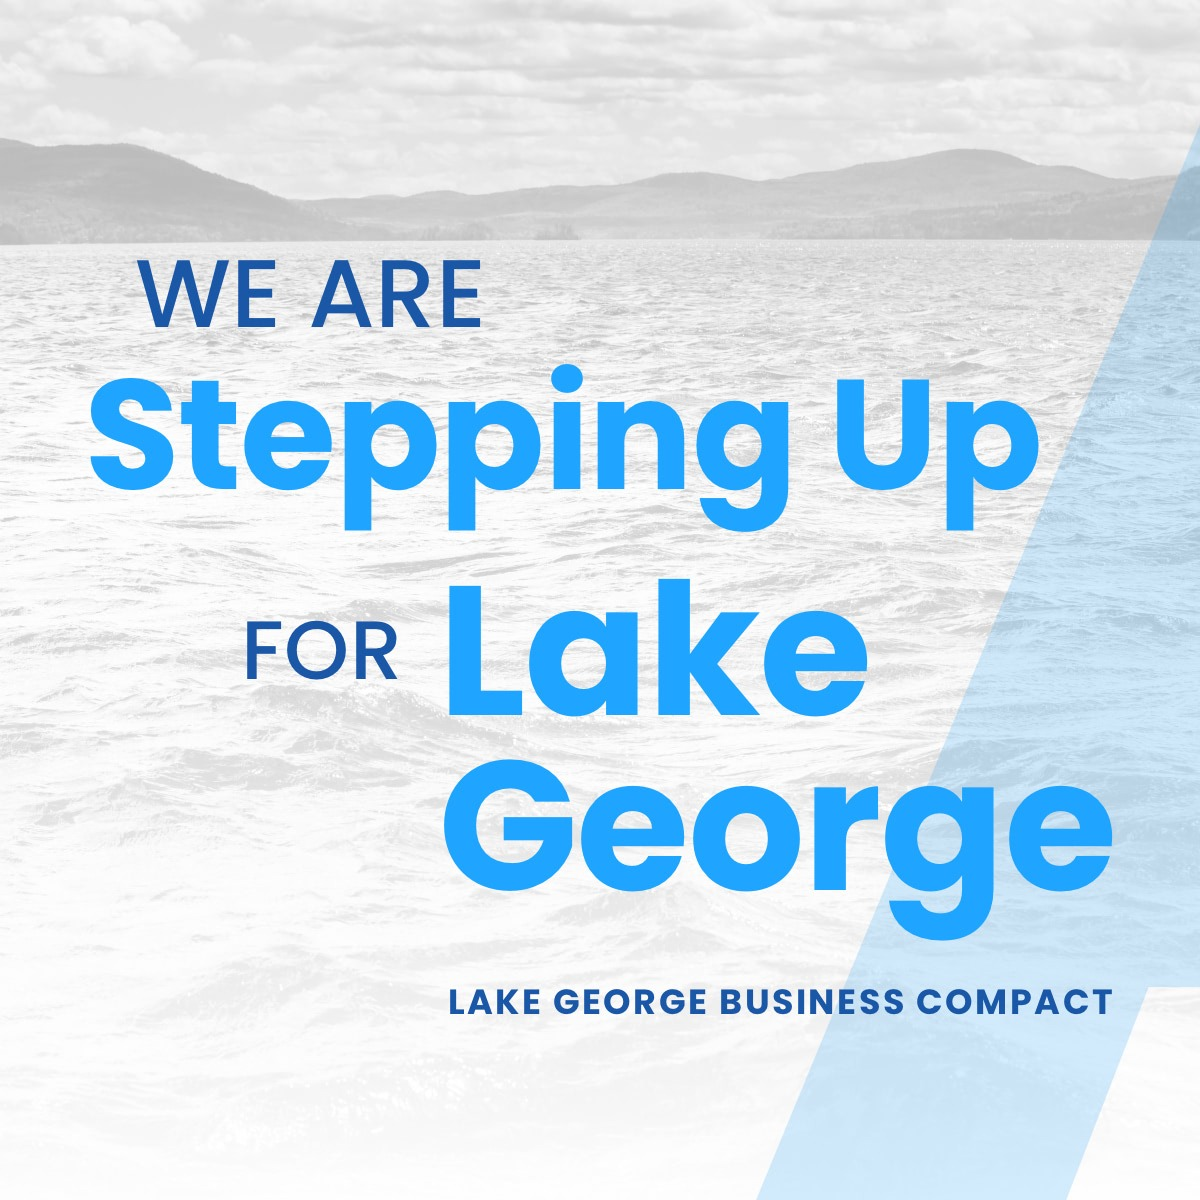 A graphic of Lake George stating that Sun Castle Resort is stepping up for Lake George as part of the Lake George Business Compact